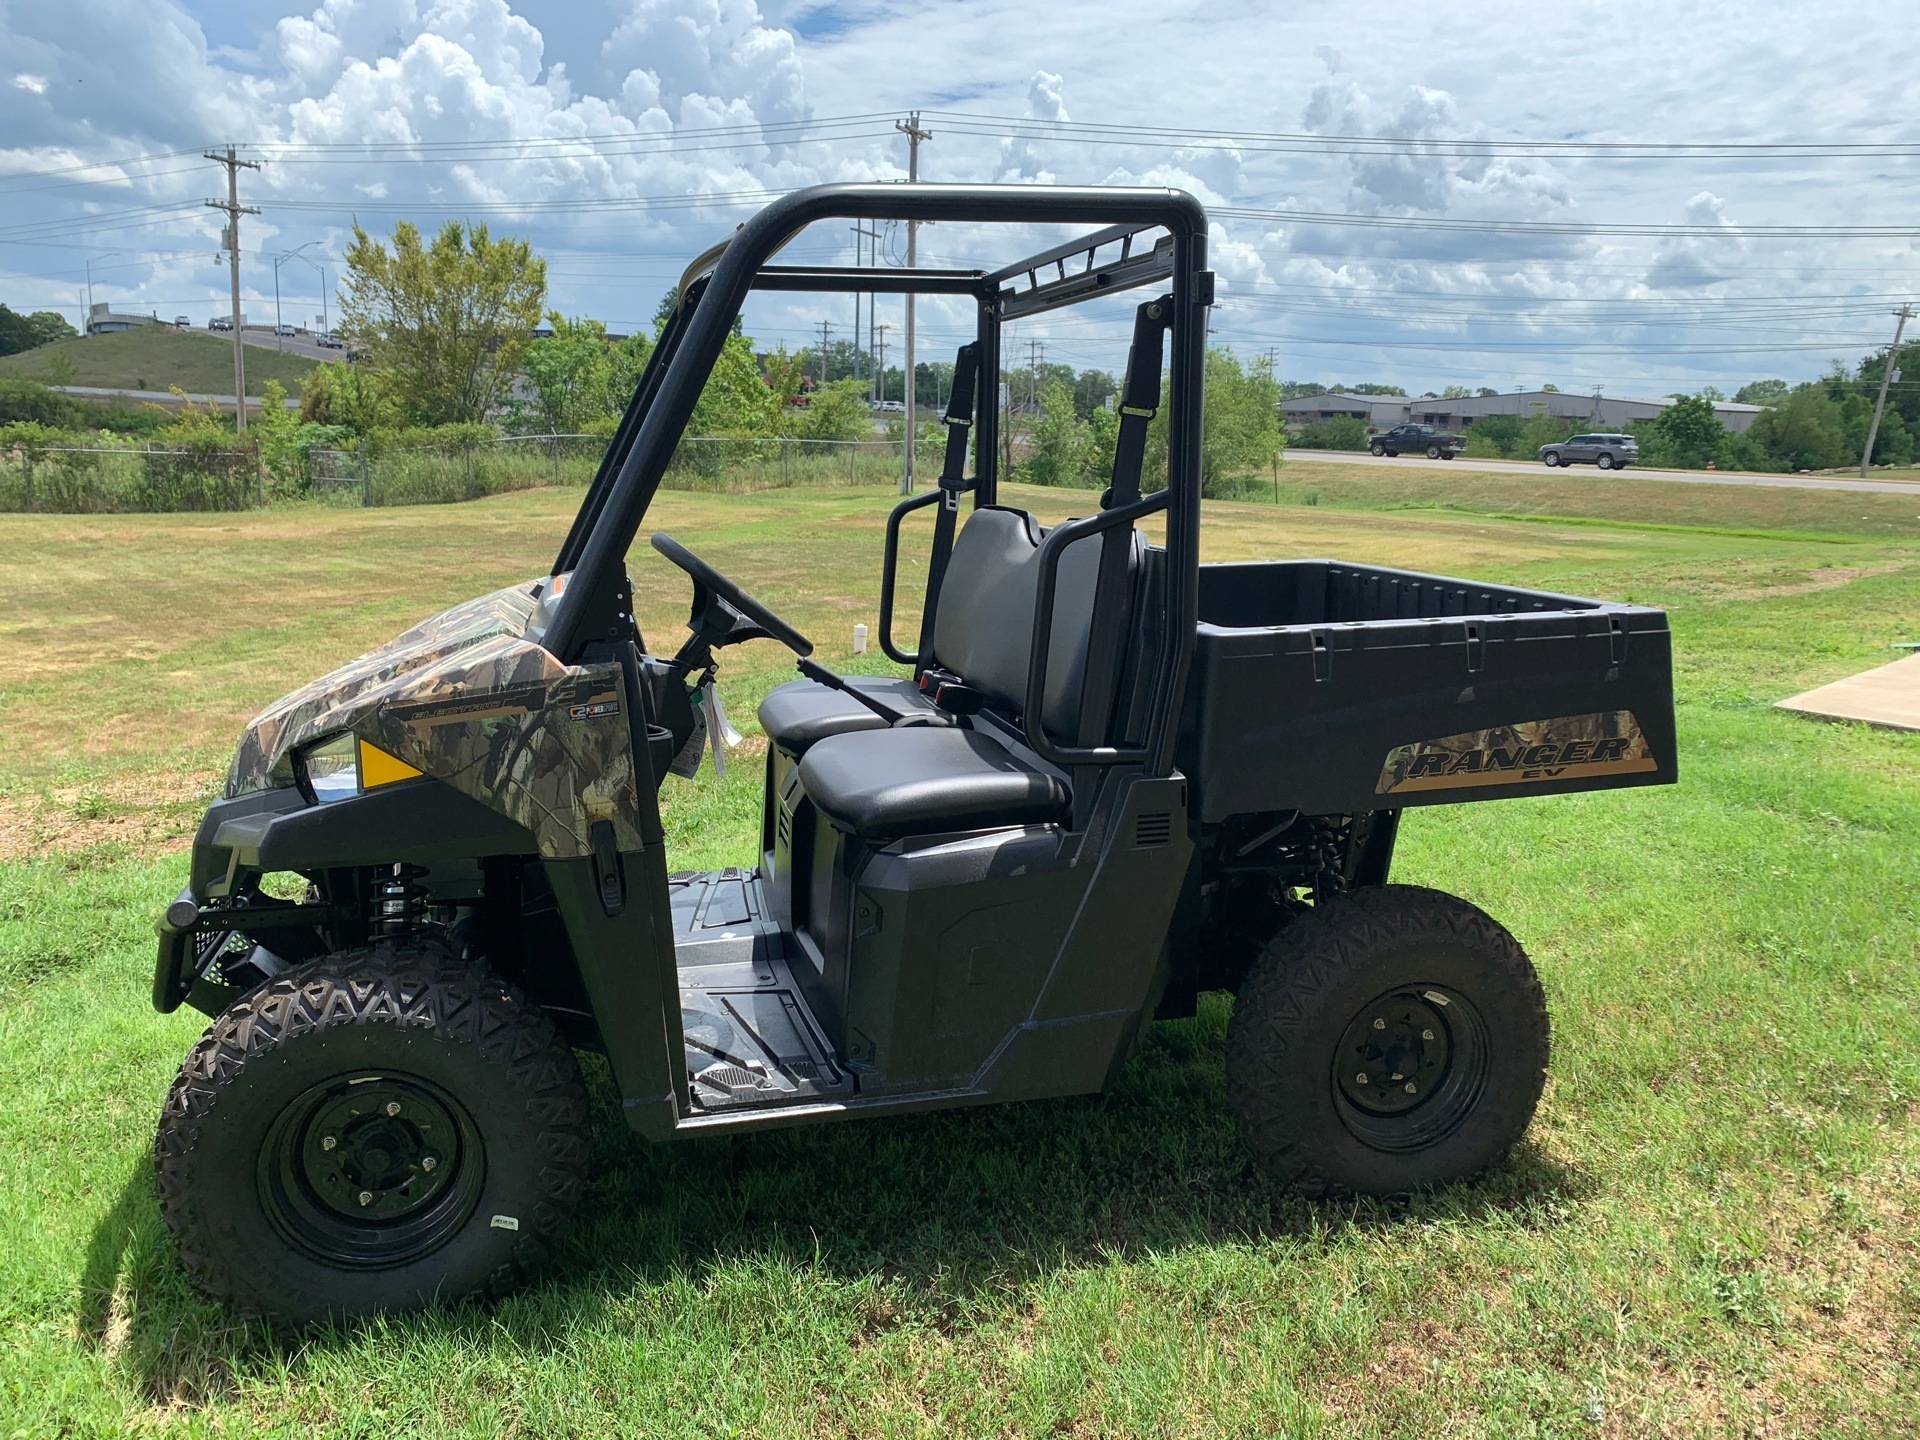 2020 Polaris Ranger EV in Conway, Arkansas - Photo 1